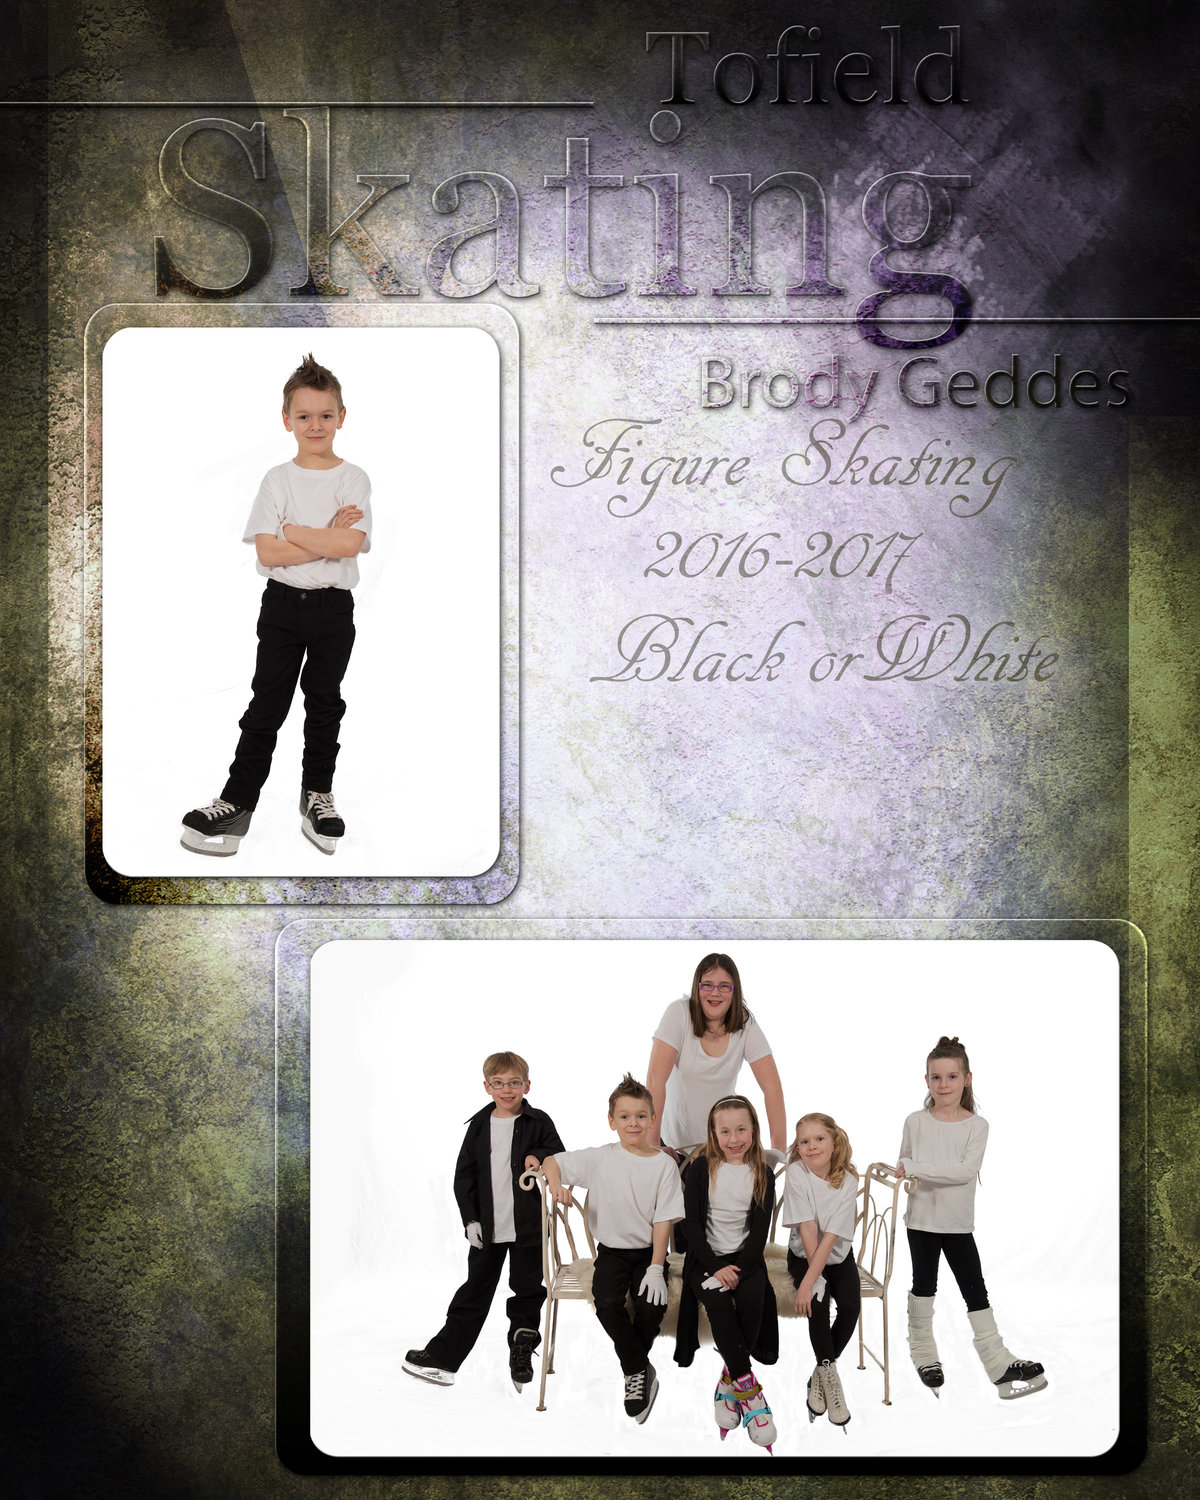 Edmonton_Figure_Skating_Photographer_2